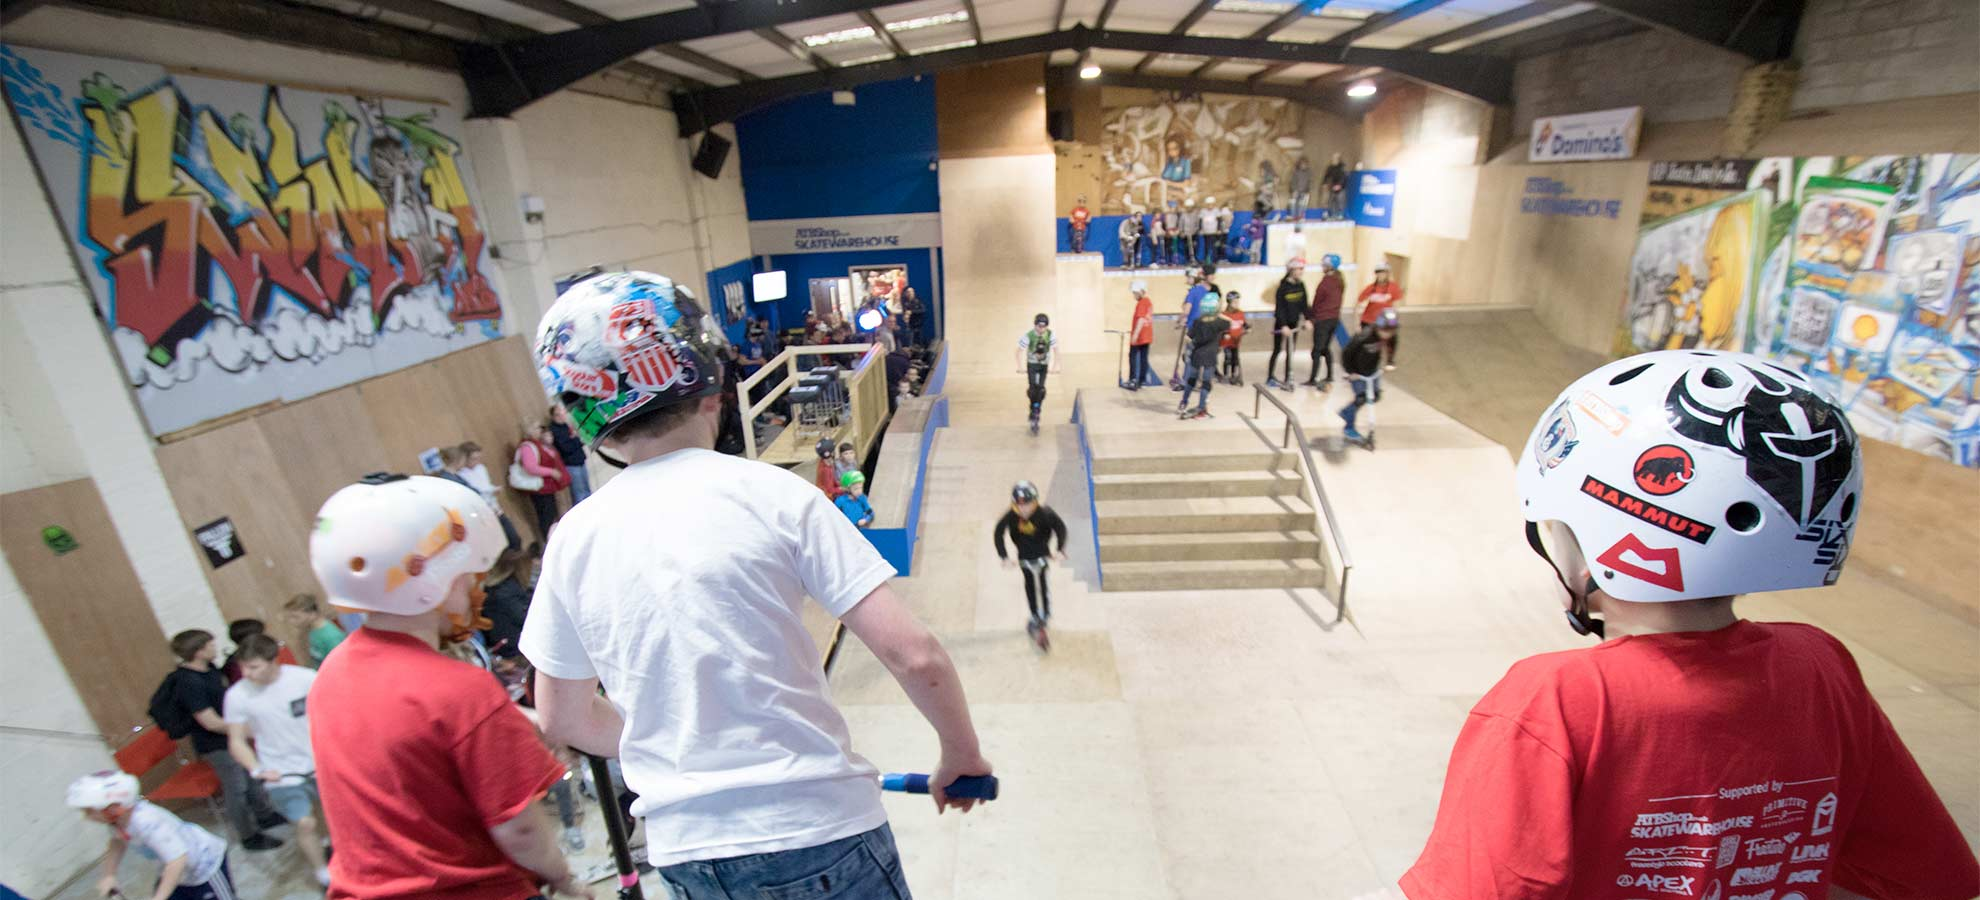 skate-park-sessions-header-image-swindon2